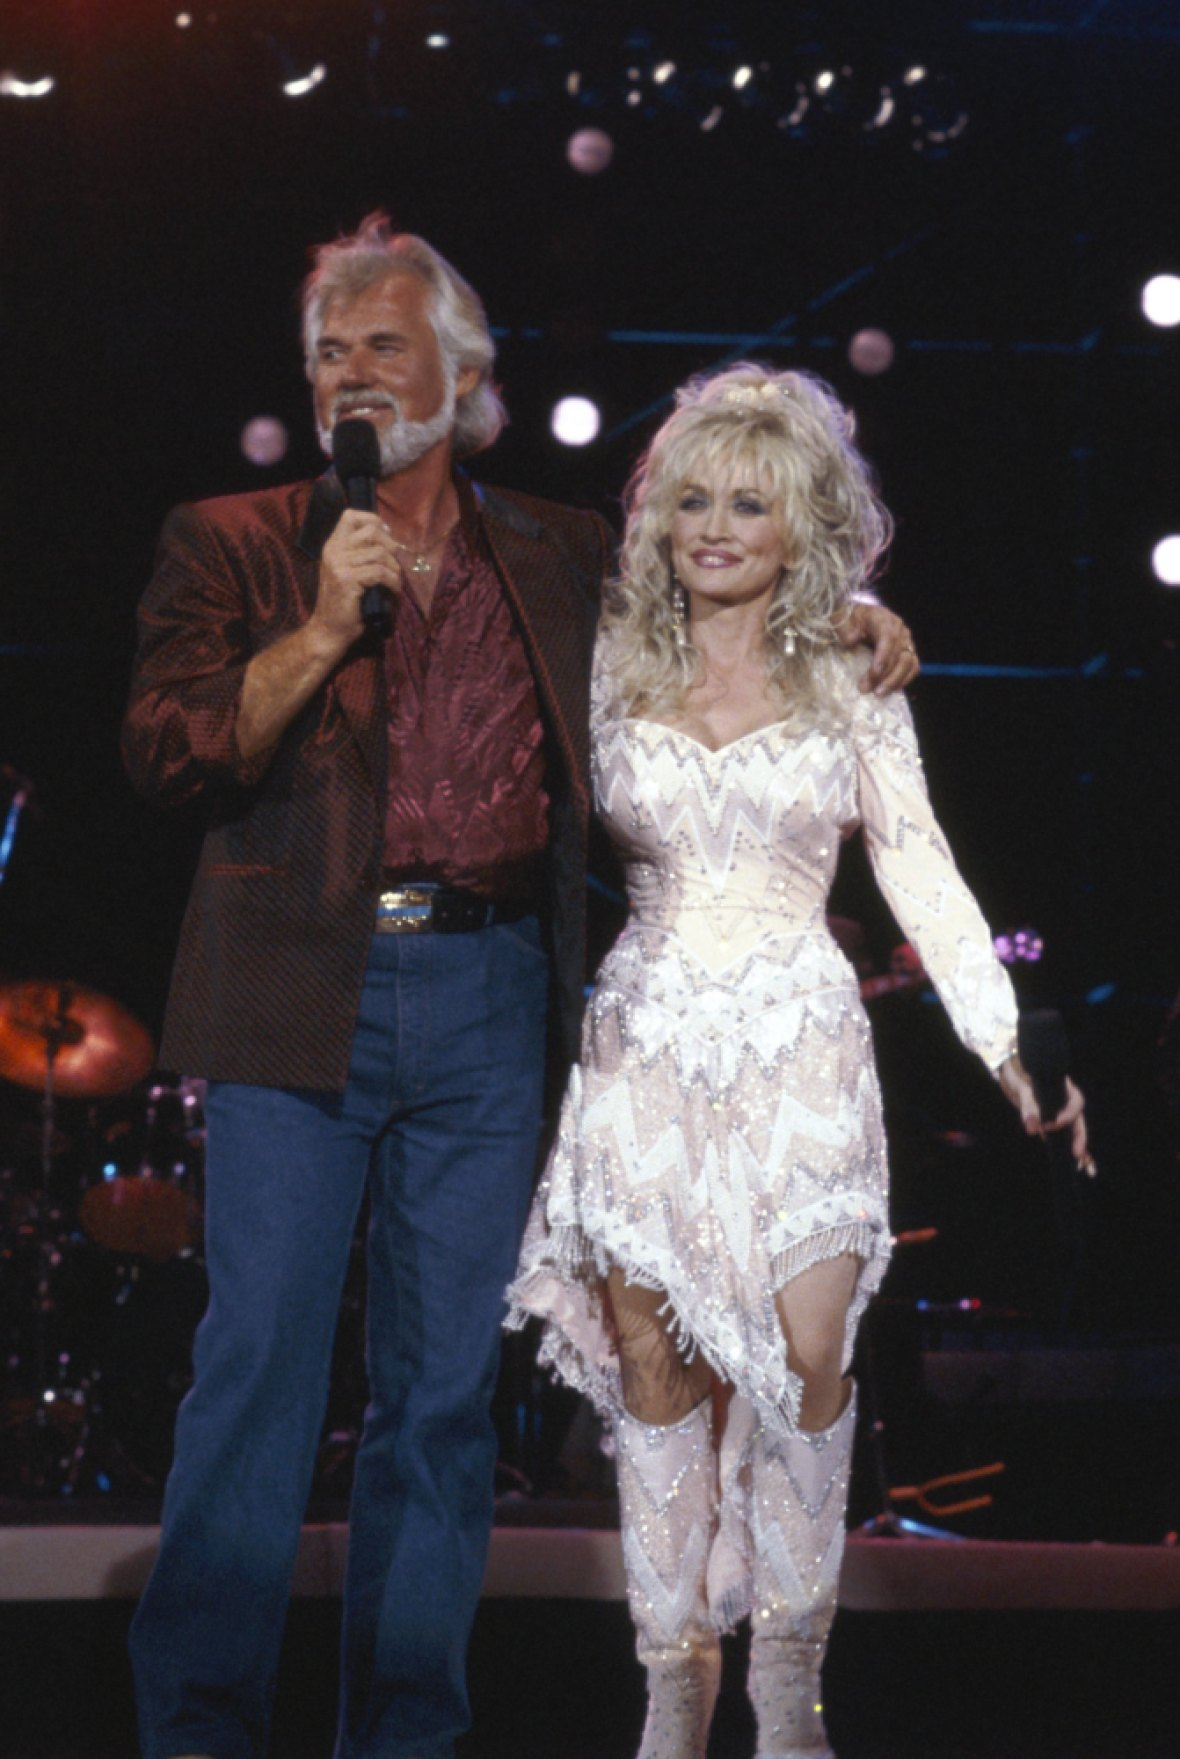 Dolly Parton S Last Performance With Kenny Rogers Will Be Very Emotional